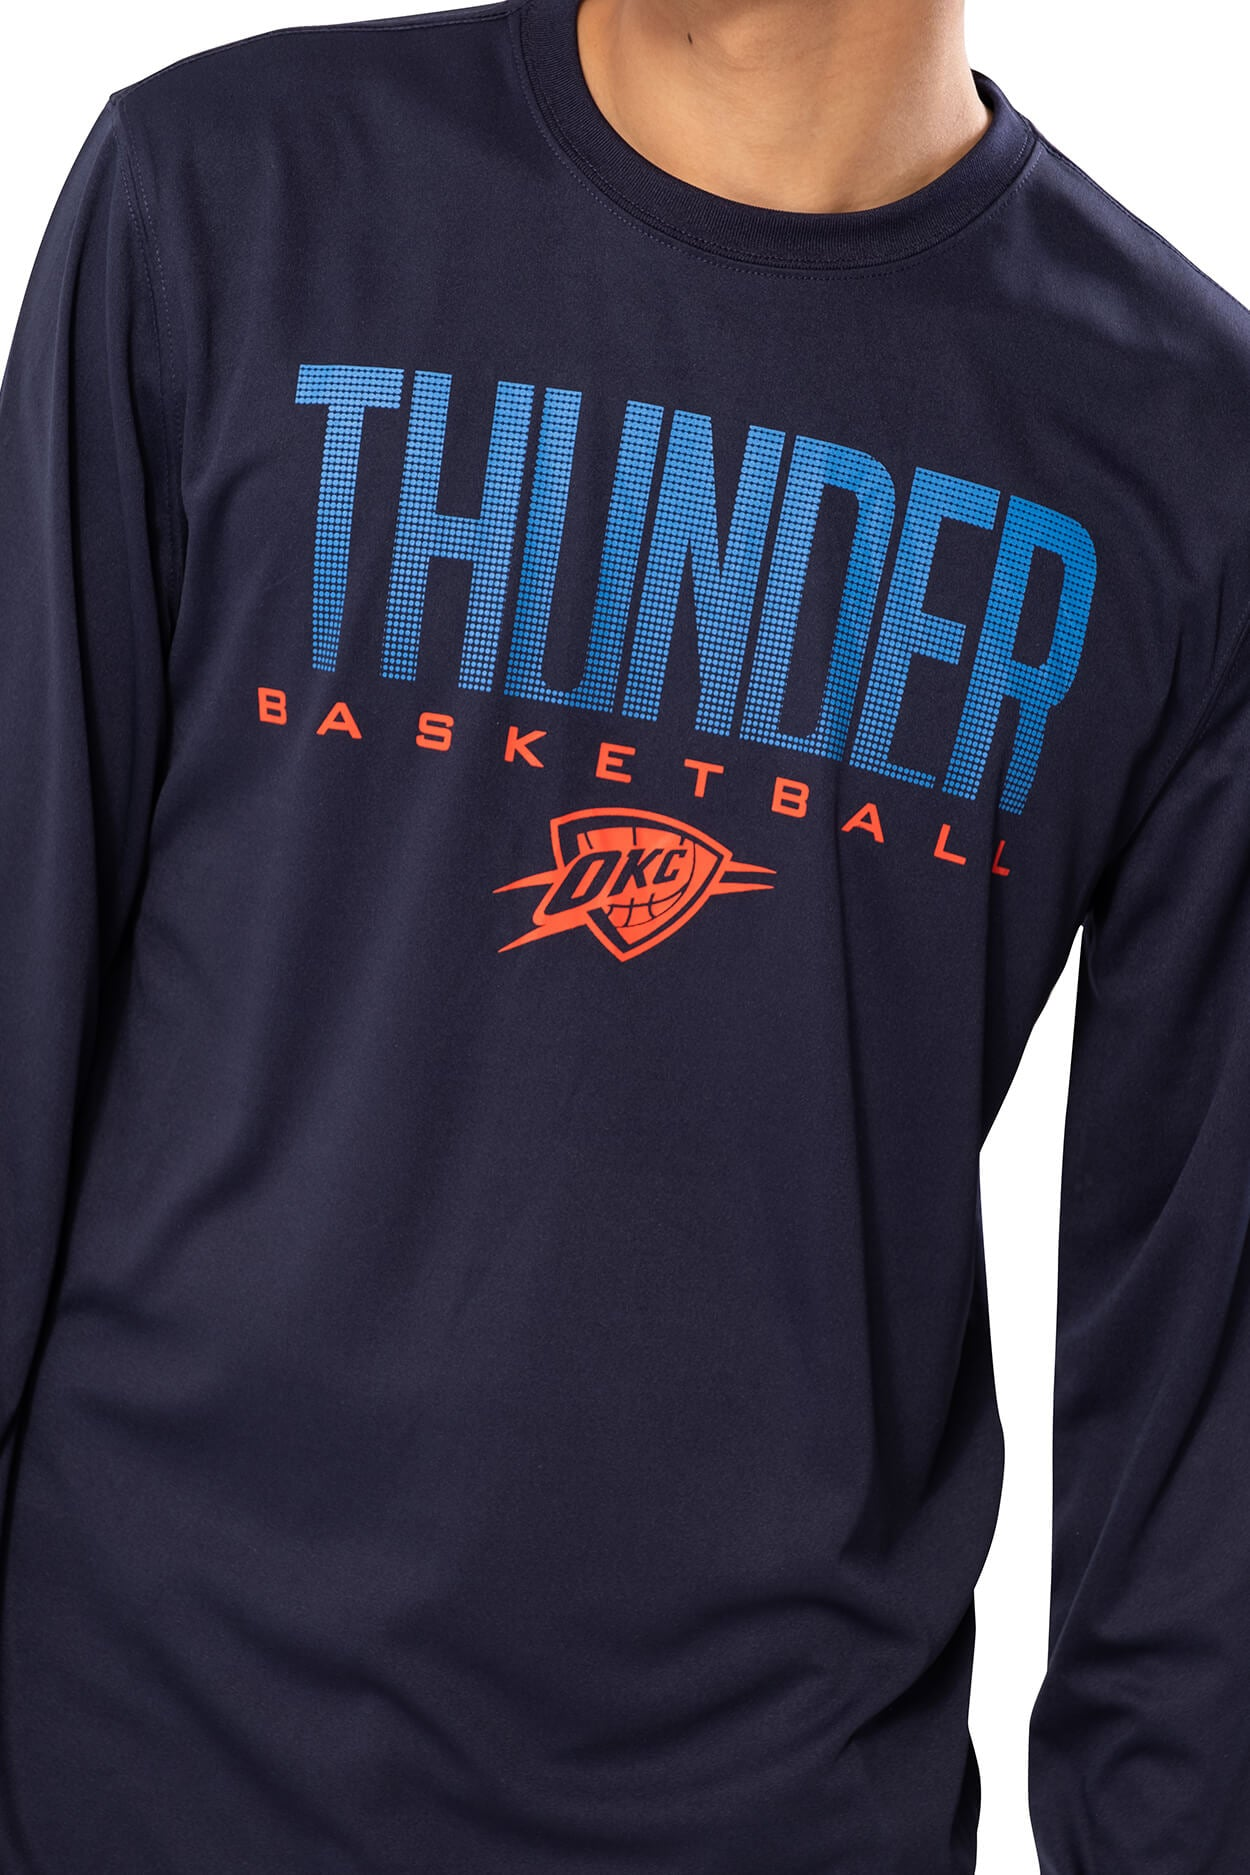 NBA Oklahoma City Thunder Men's Long Sleeve Tee|Oklahoma City Thunder